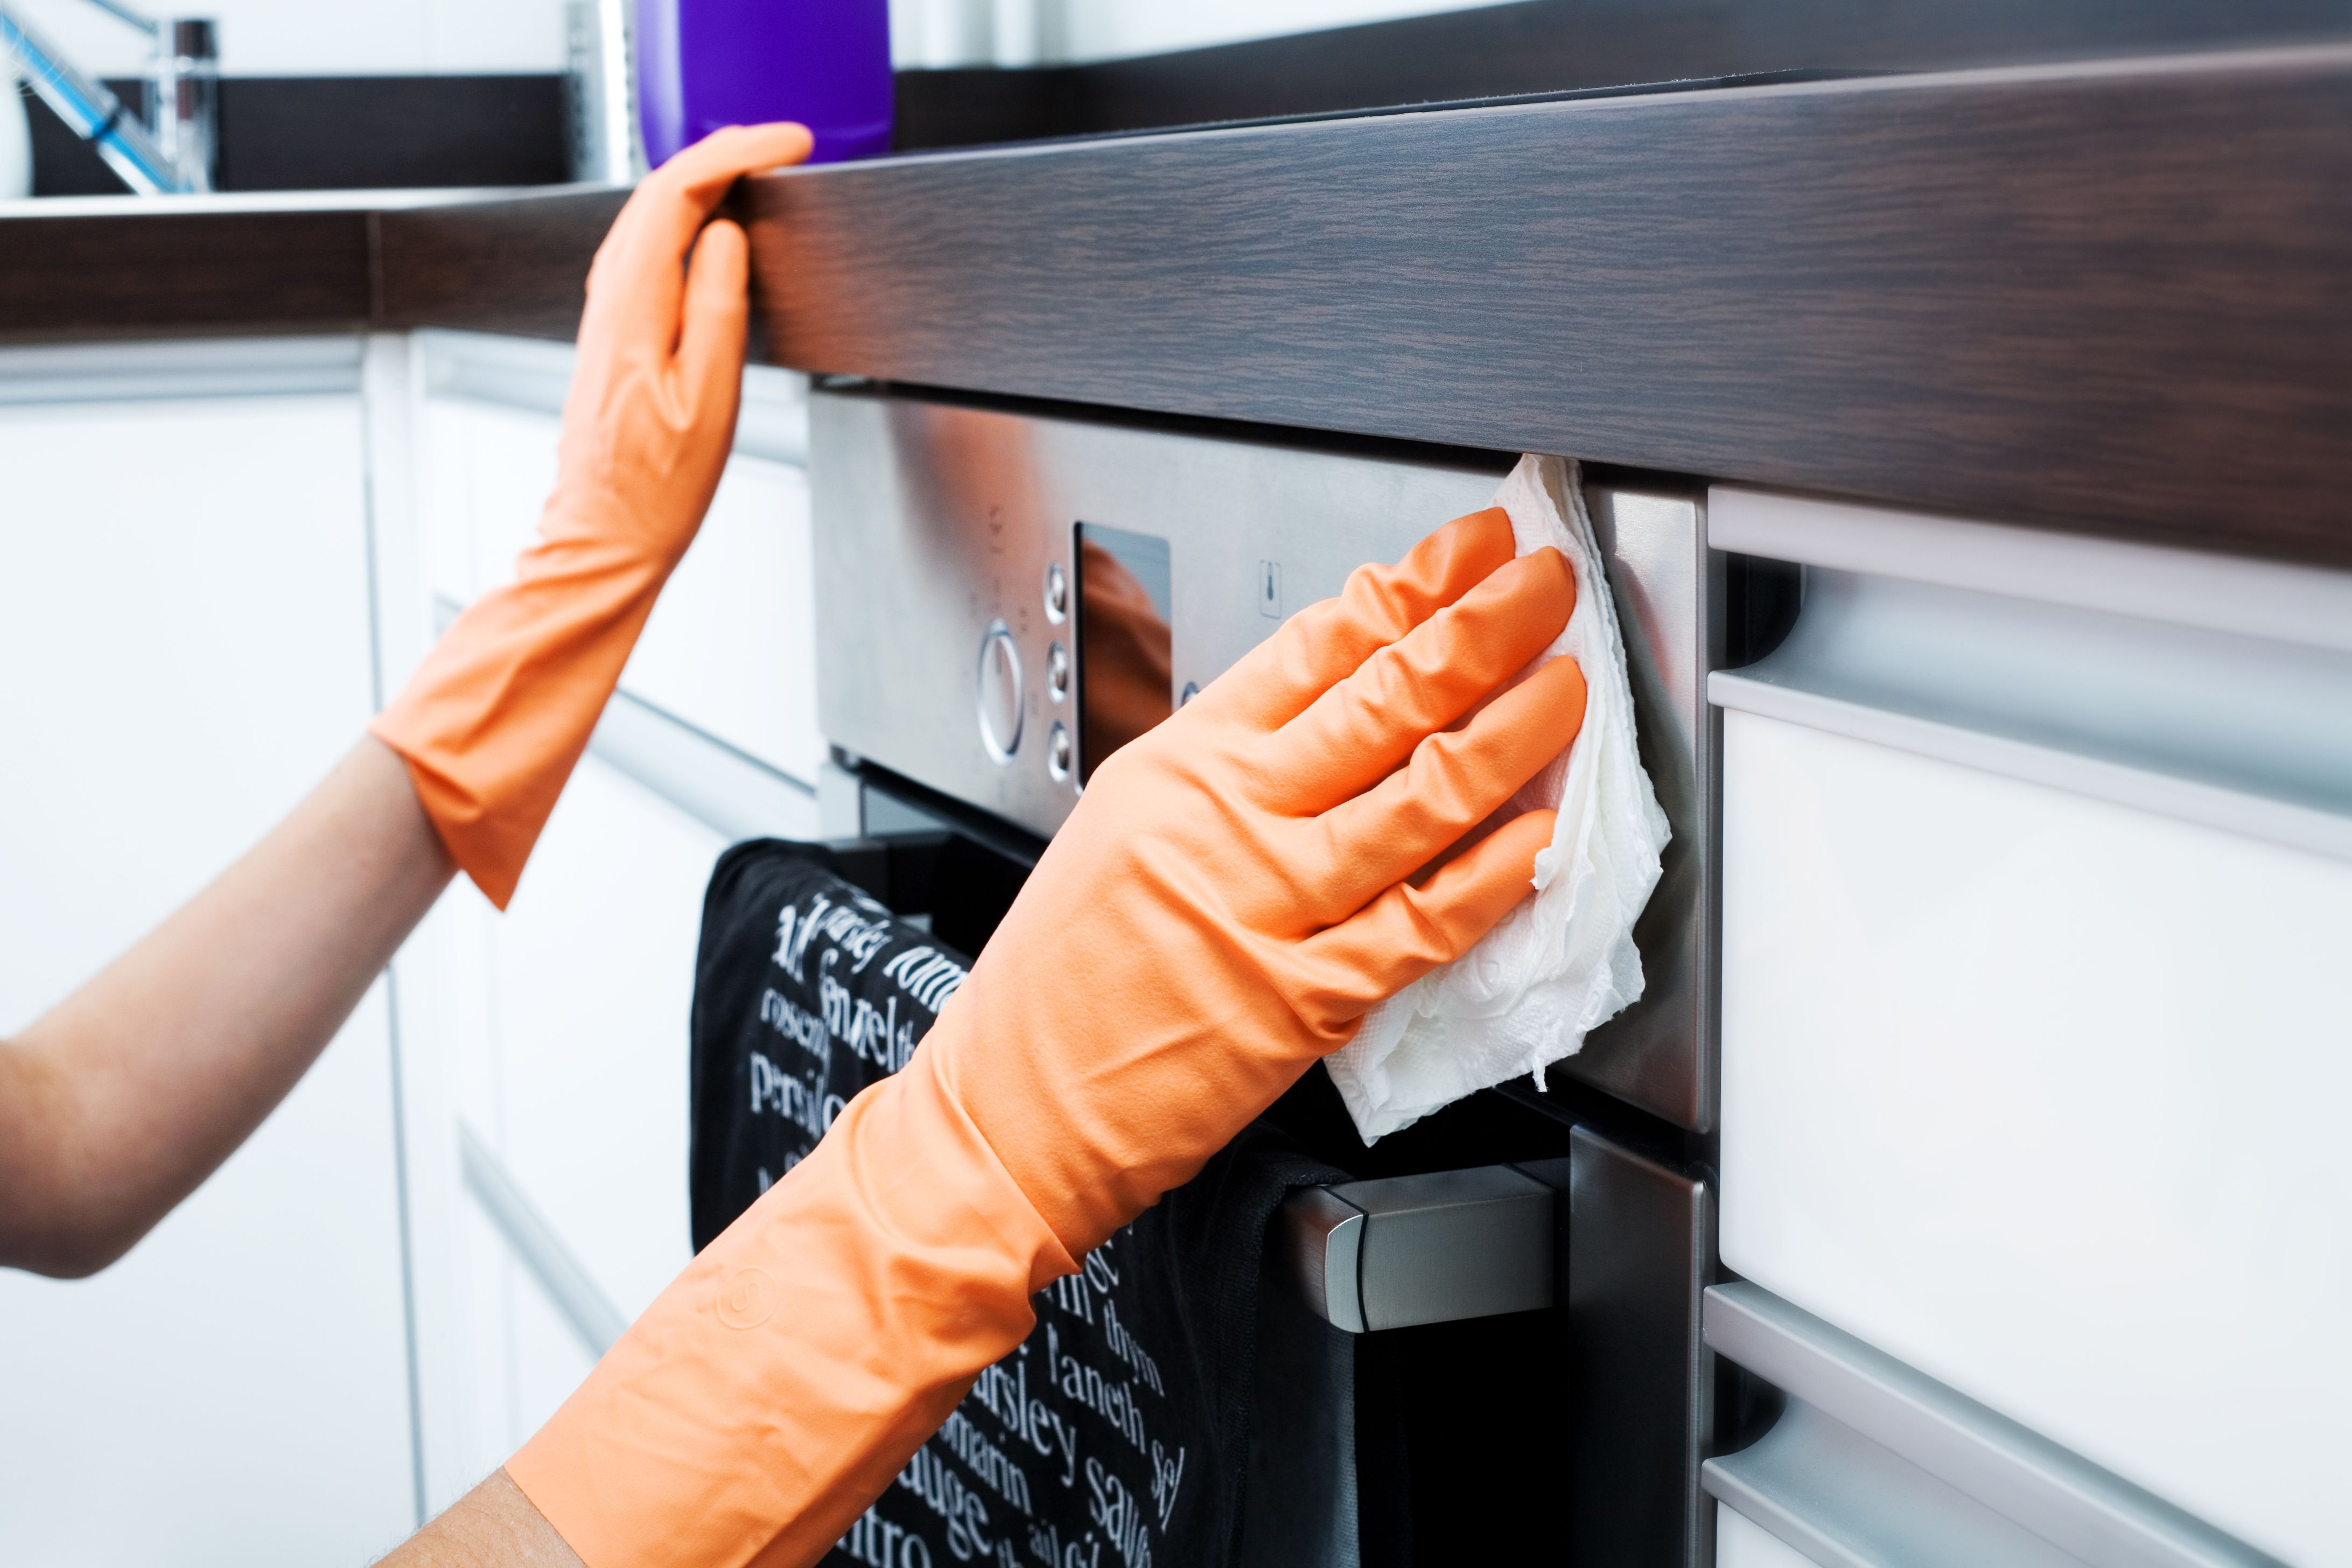 How to Clean Stainless Steel Appliances Easily - Best Way to Clean Stainless Steel